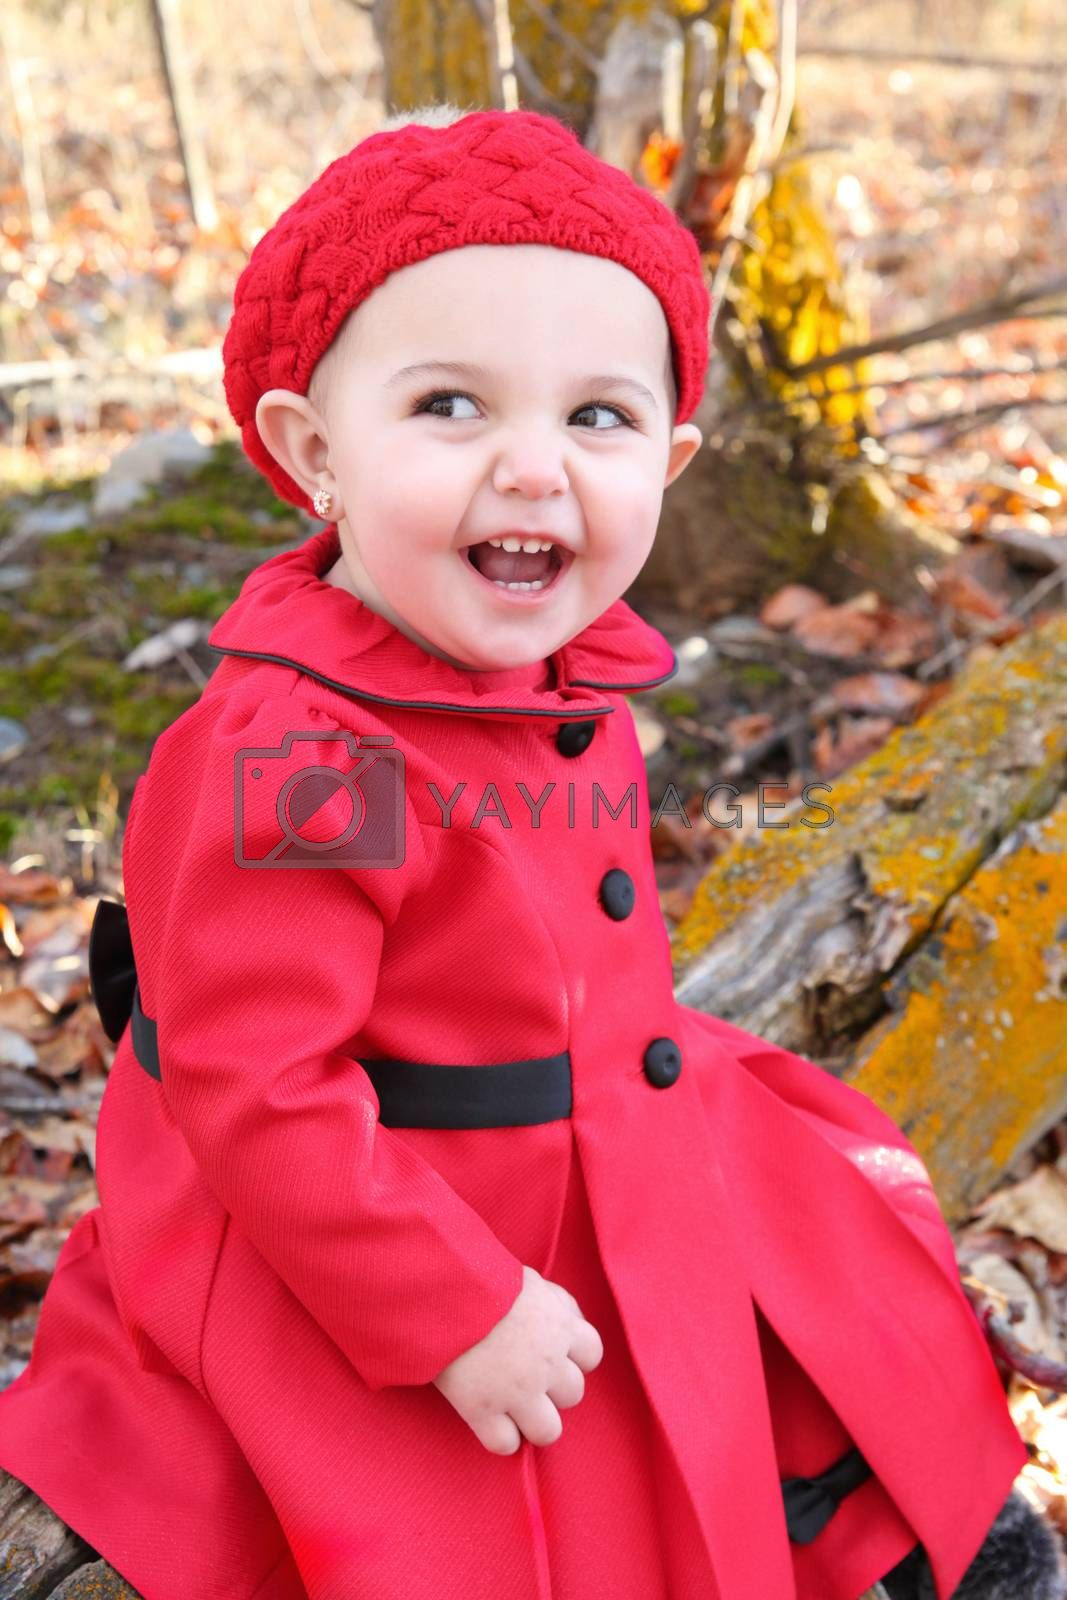 Little girl wearing a red coat and hat in the forest